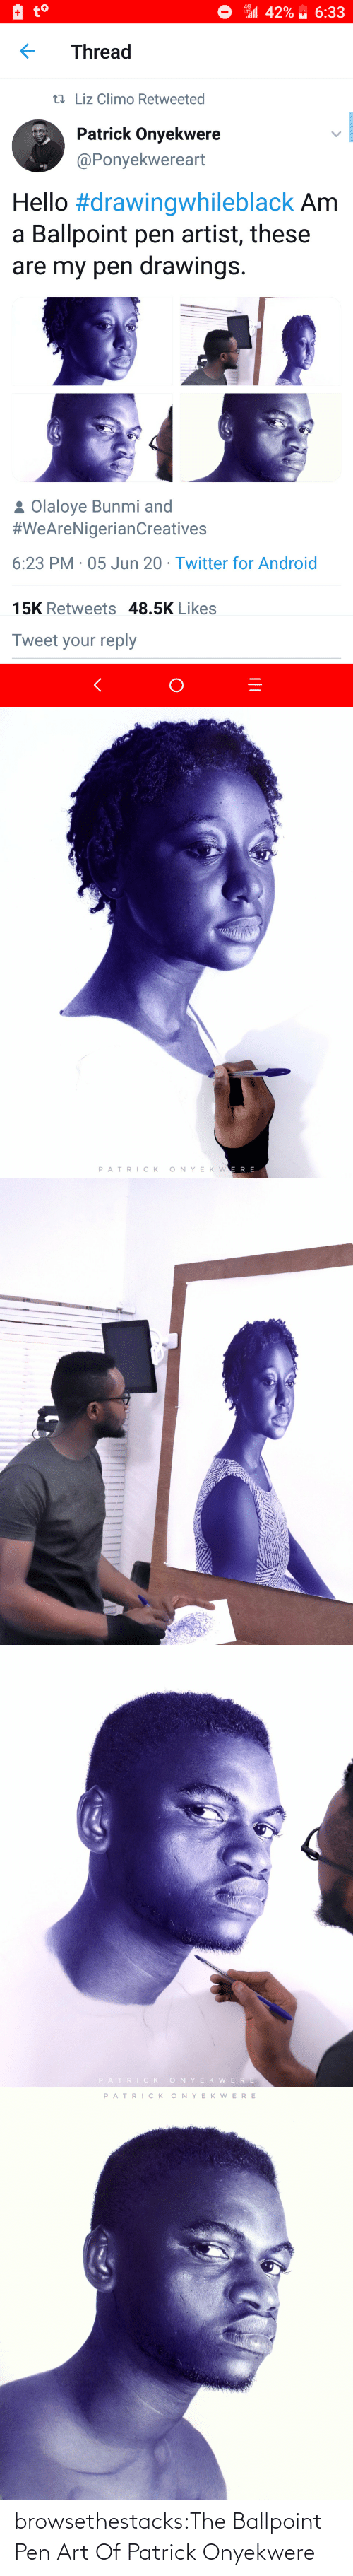 Tumblr, Twitter, and Blog: browsethestacks:The Ballpoint Pen Art Of Patrick Onyekwere